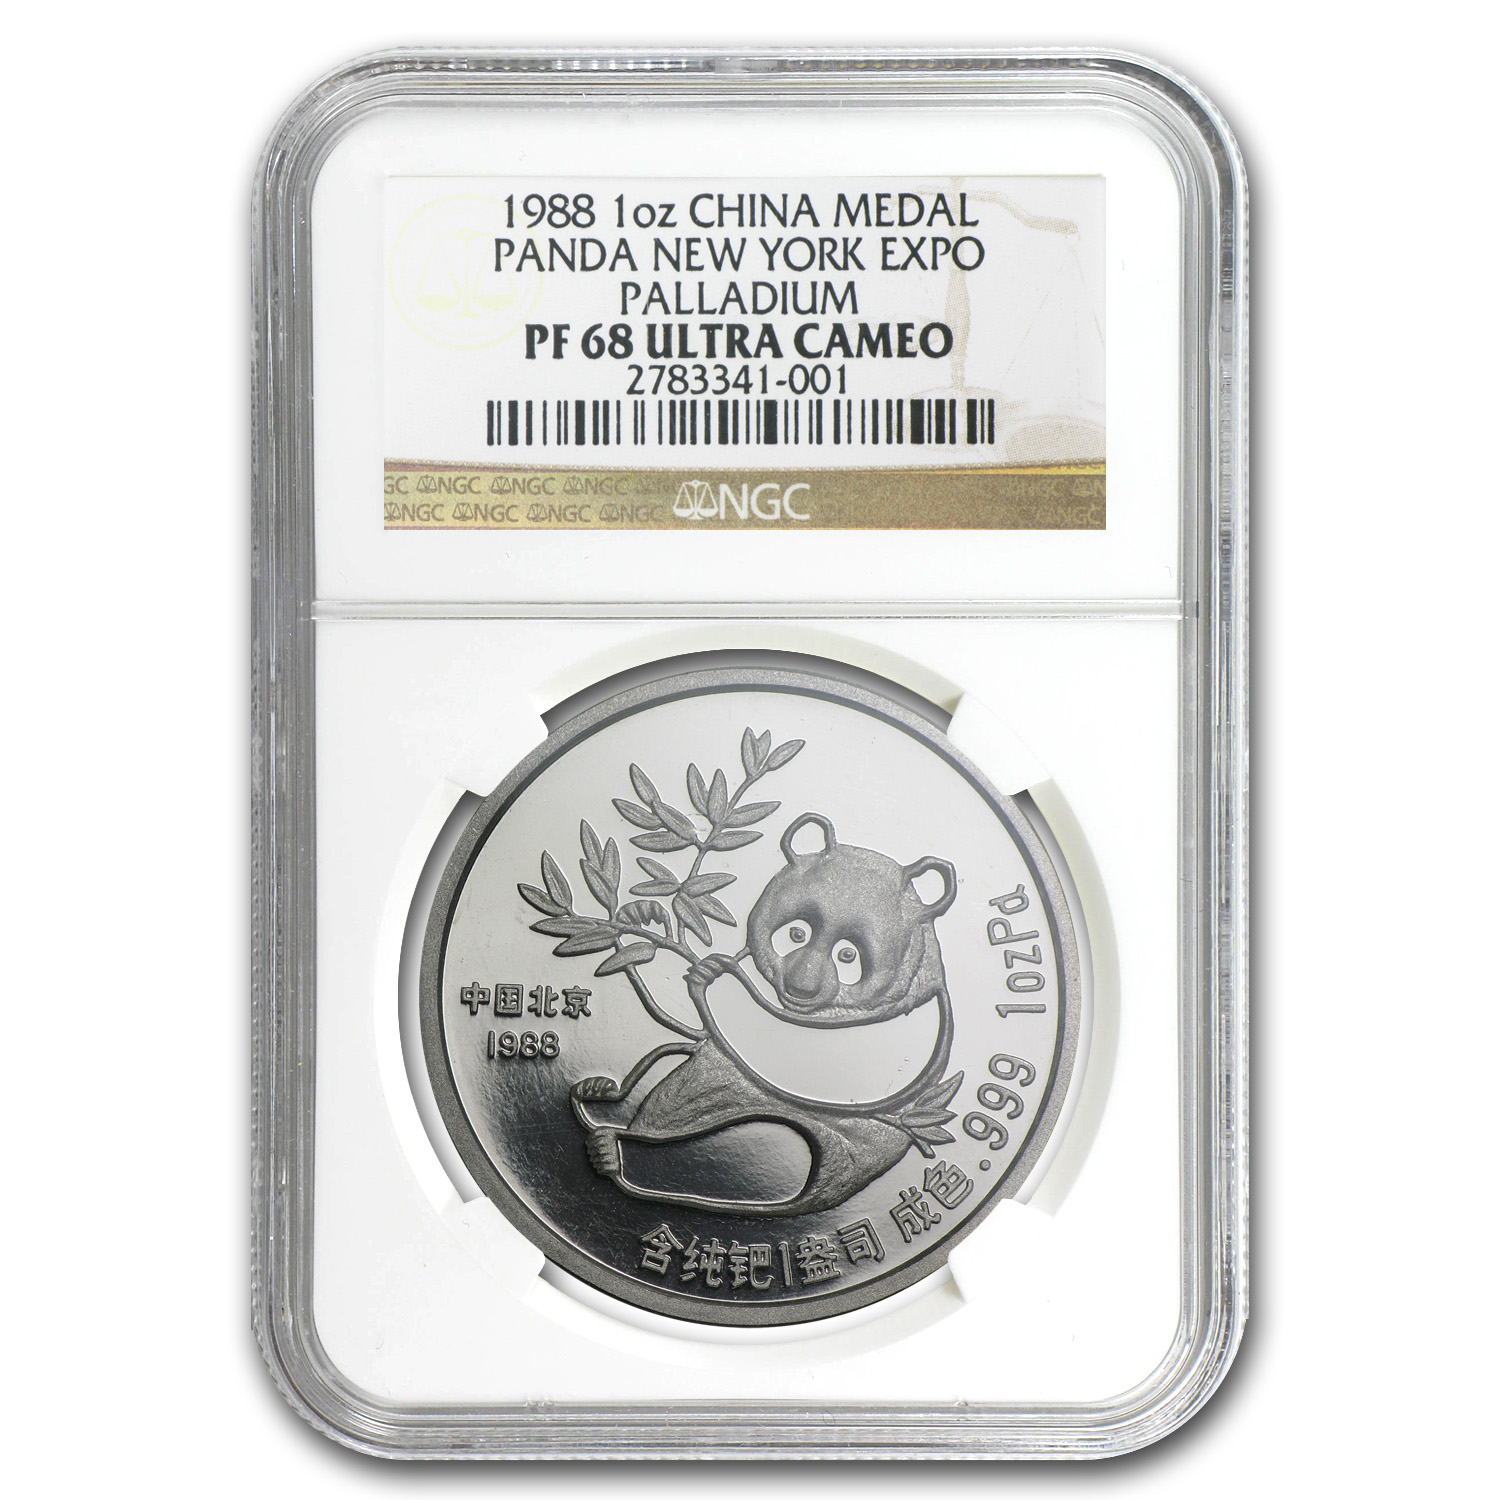 1988 1 oz Palladium Chinese Panda (New York Coin Expo) PF-68 NGC